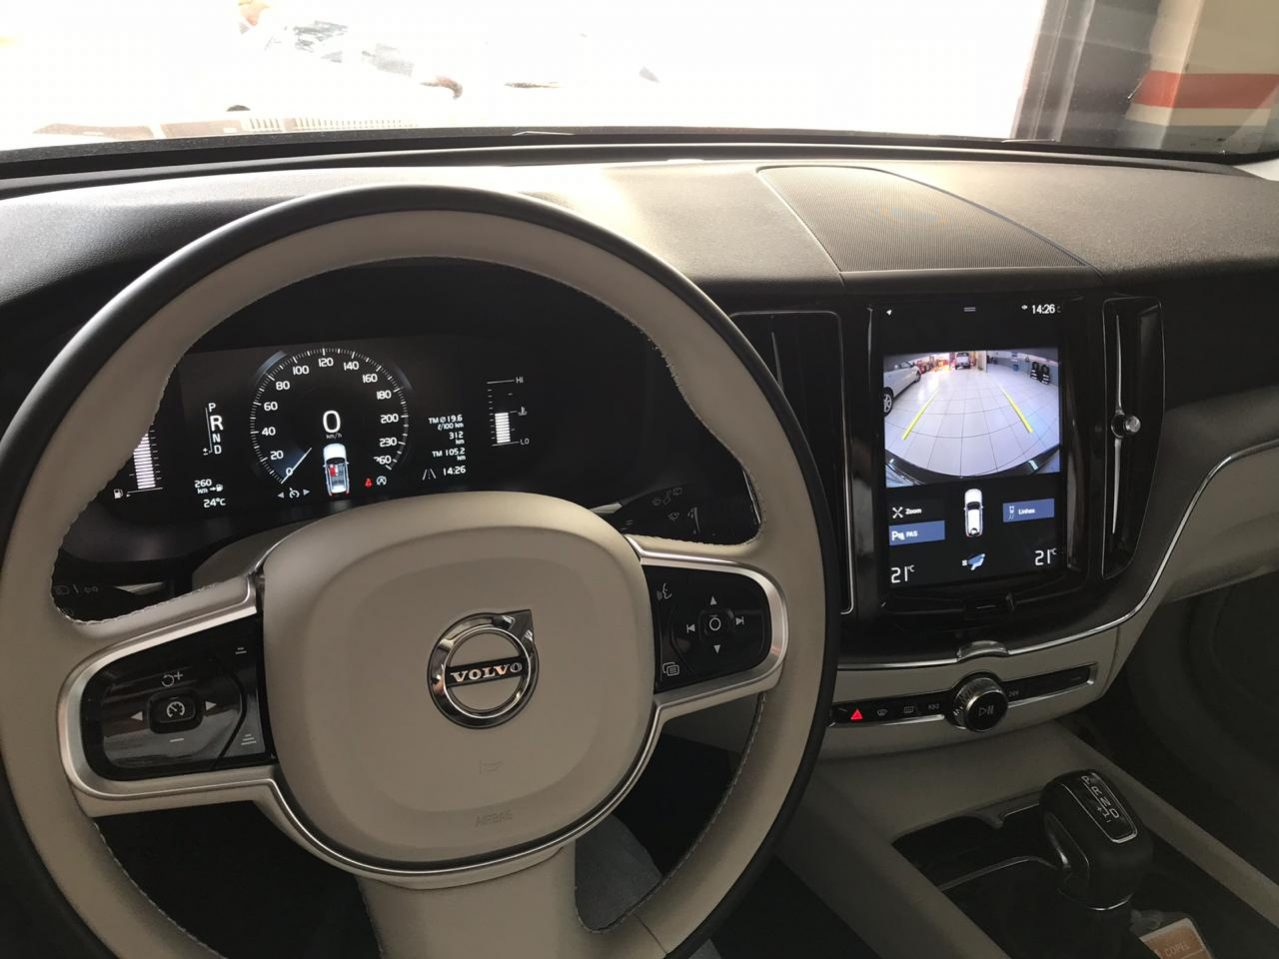 Talento-automotivo-cascavel-pr-volvo-xc60-interior